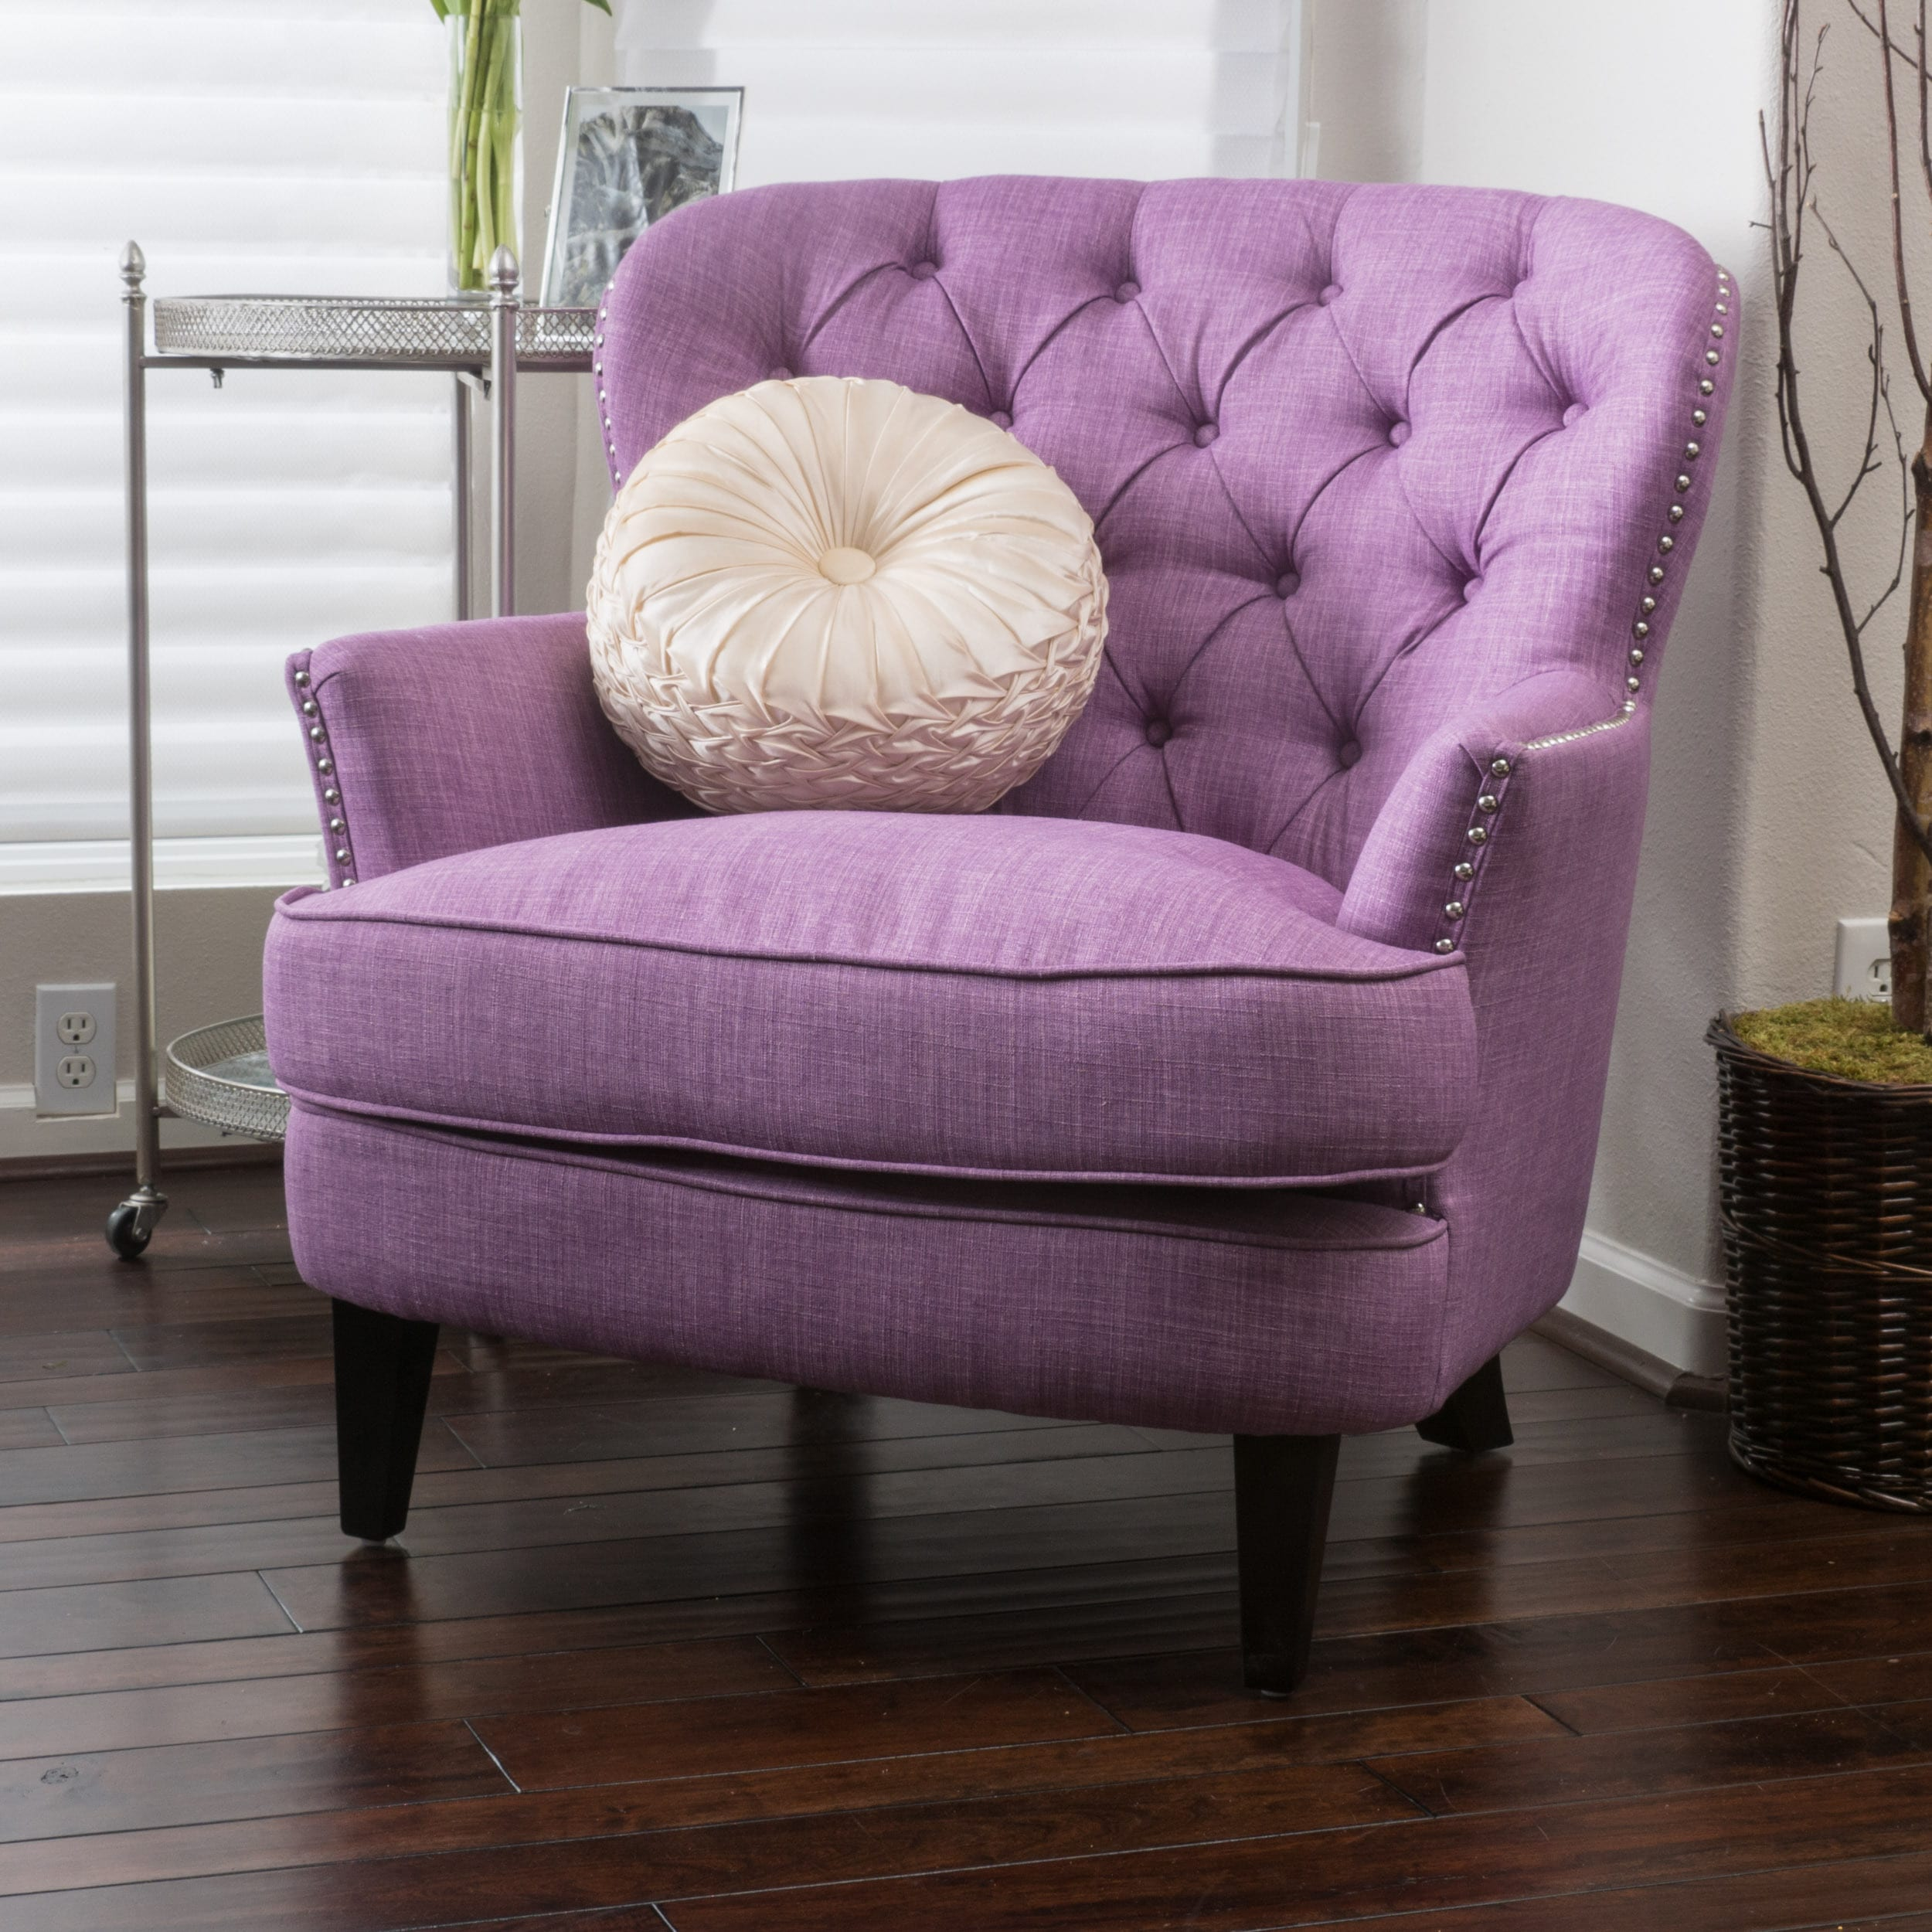 Tafton Tufted Oversized Fabric Club Chair By Christopher Knight Home   Free  Shipping Today   Overstock   13850122